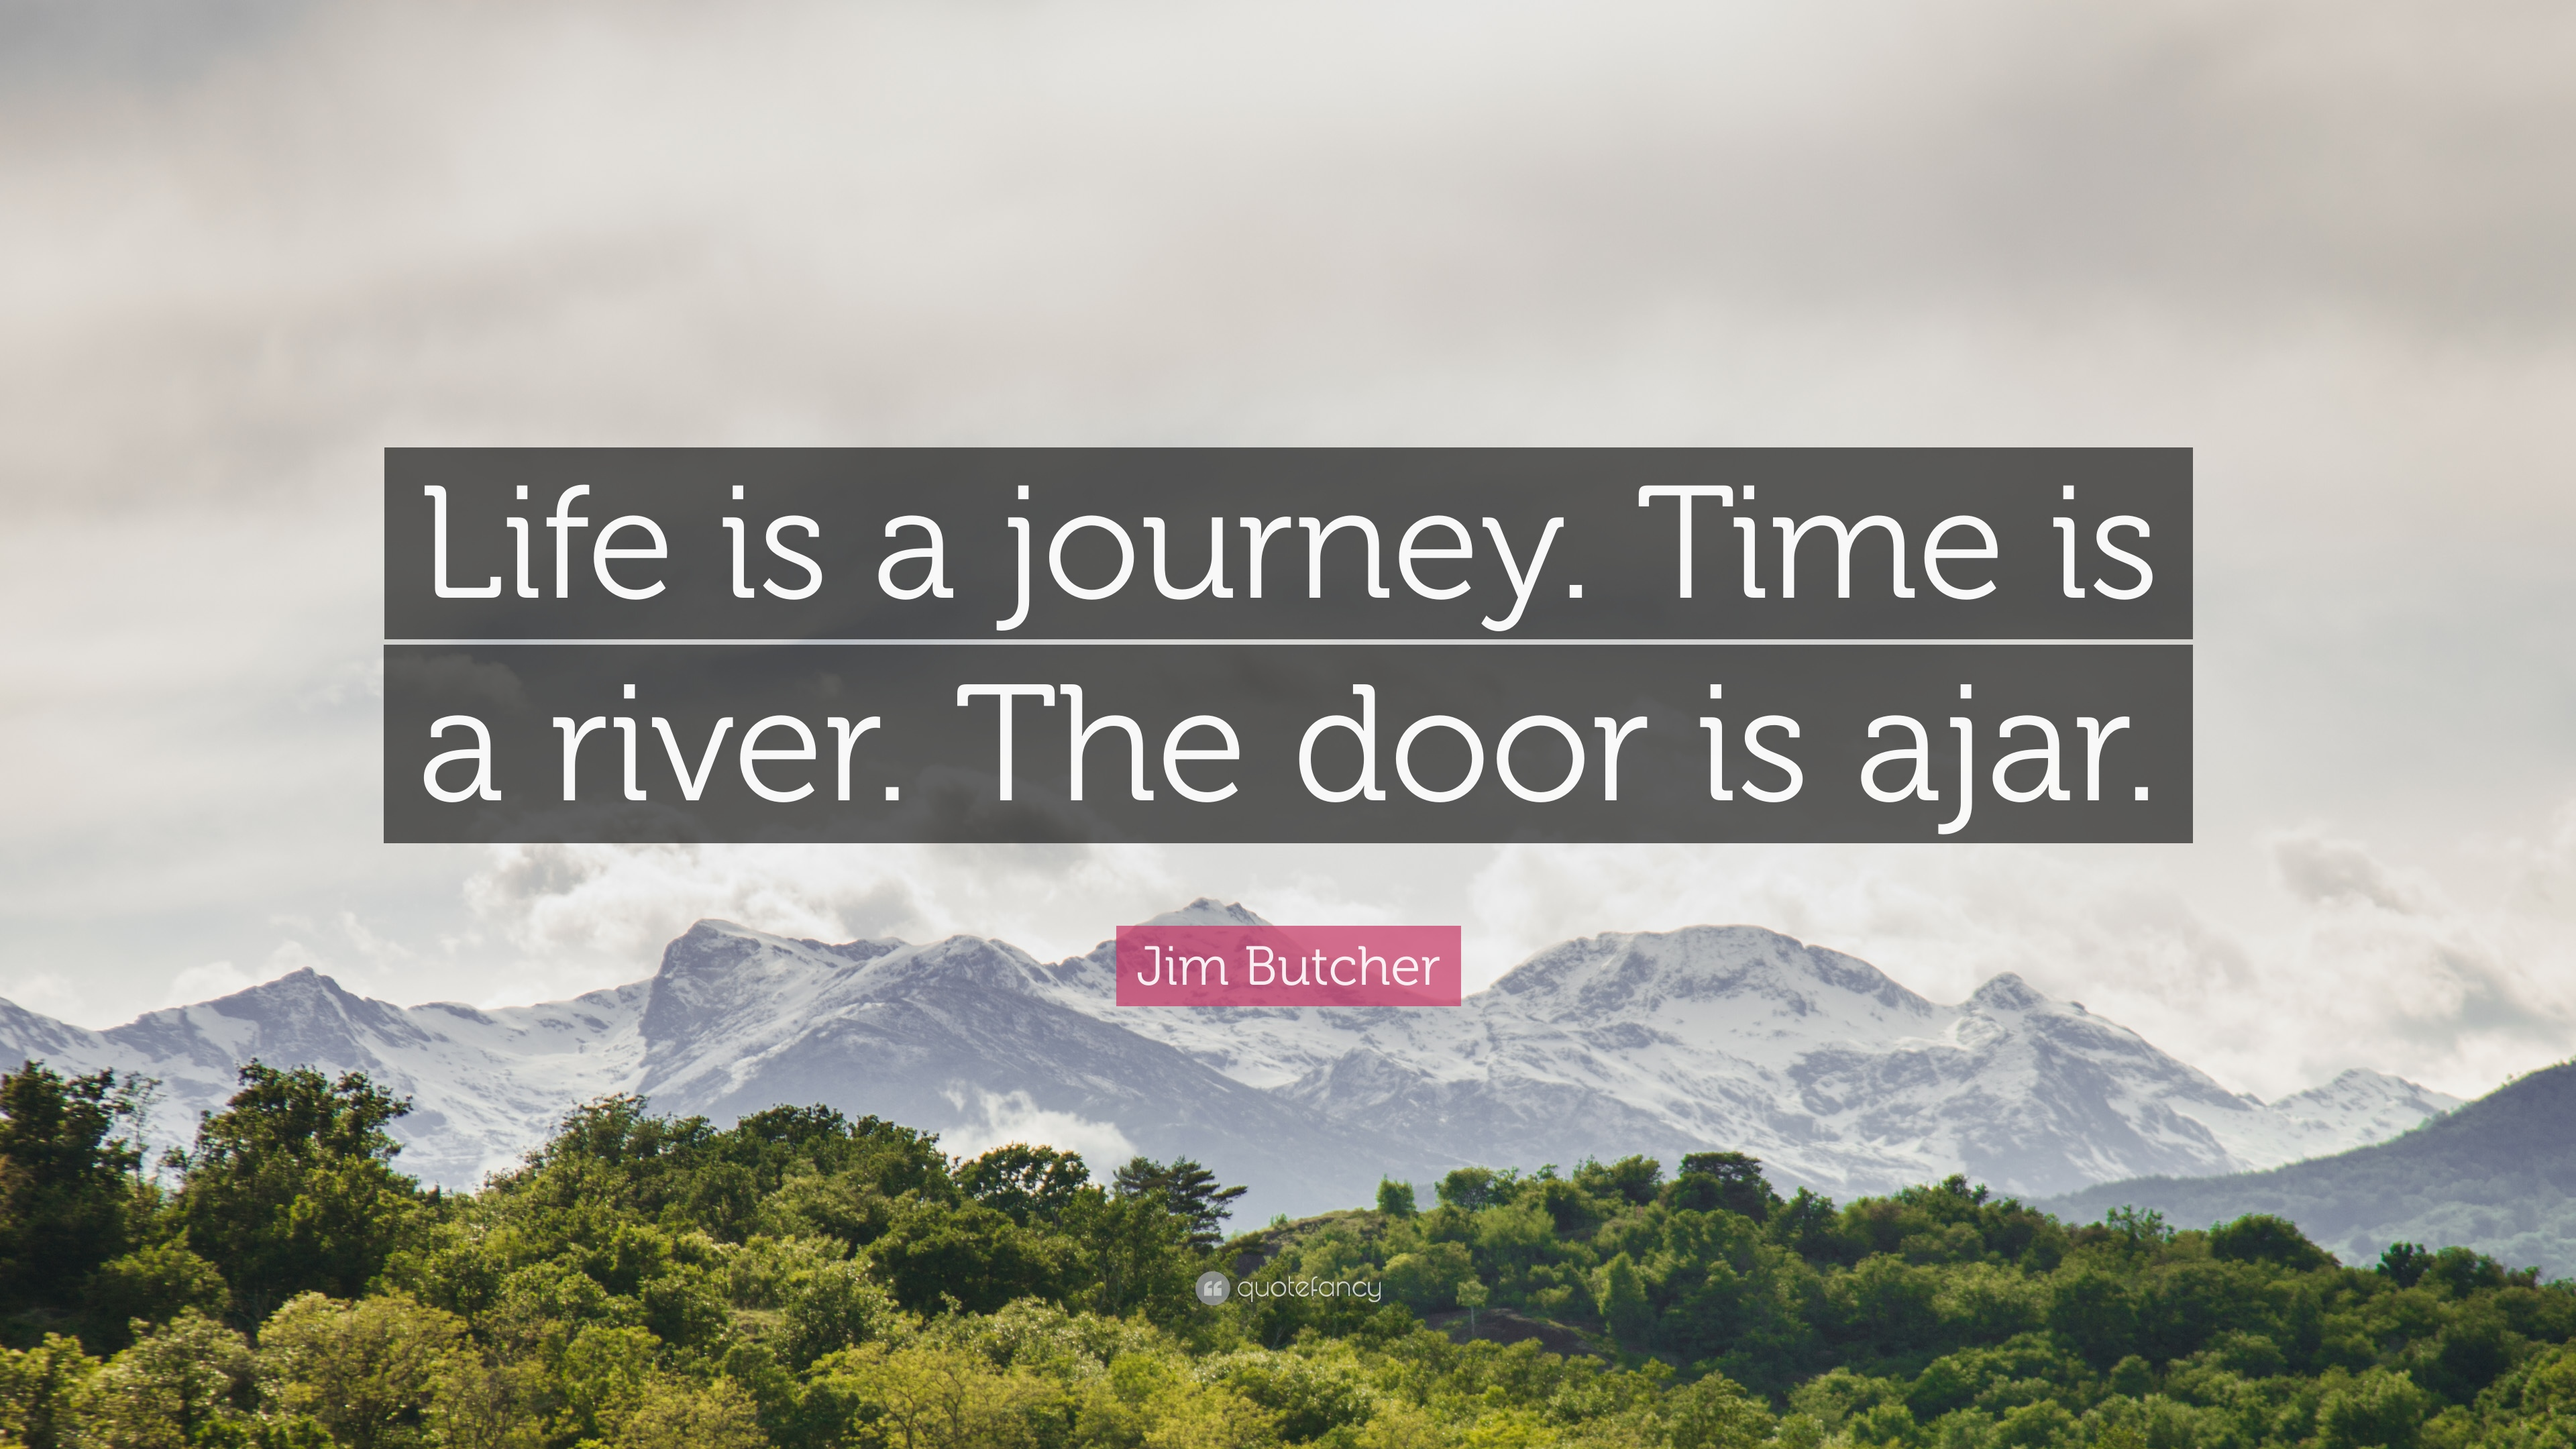 Jim Butcher Quote Life Is A Journey Time Is A River The Door Is